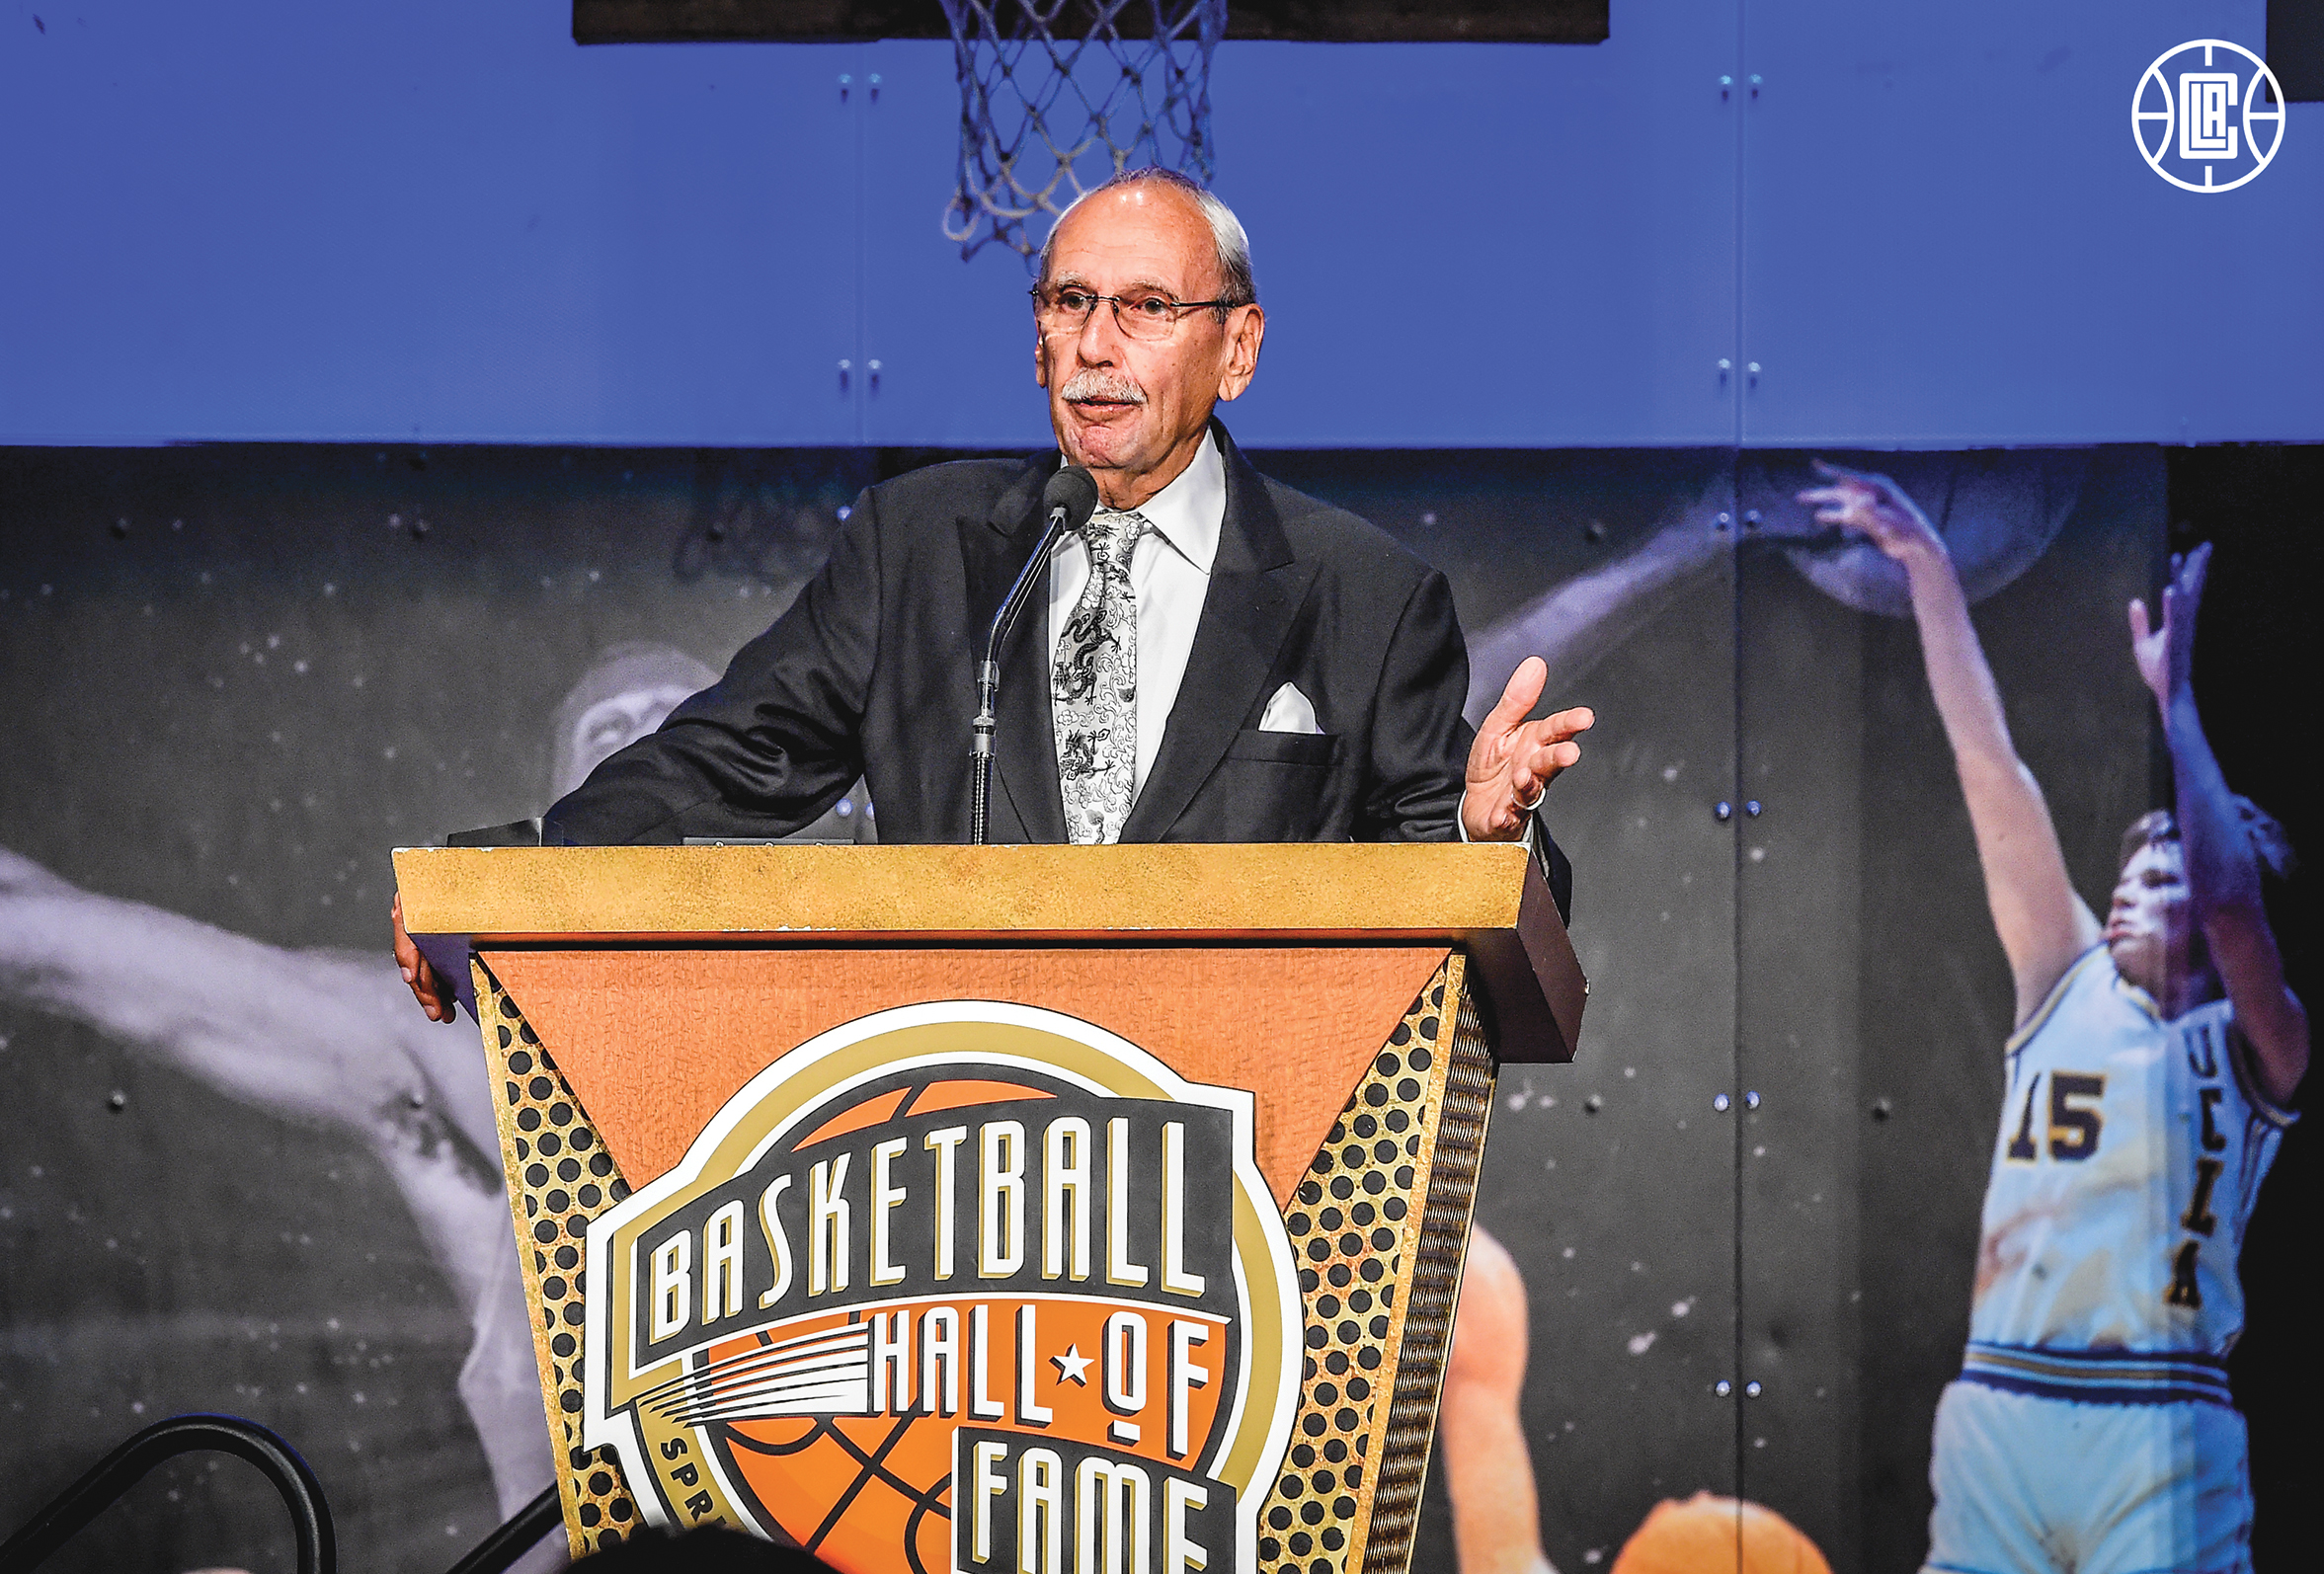 """Ralph Lawler, """"The Voice of The Clippers,"""" speaks after being inducted into the Naismith Hall of Fame. (L.A. Clippers Courtesy Photo)"""